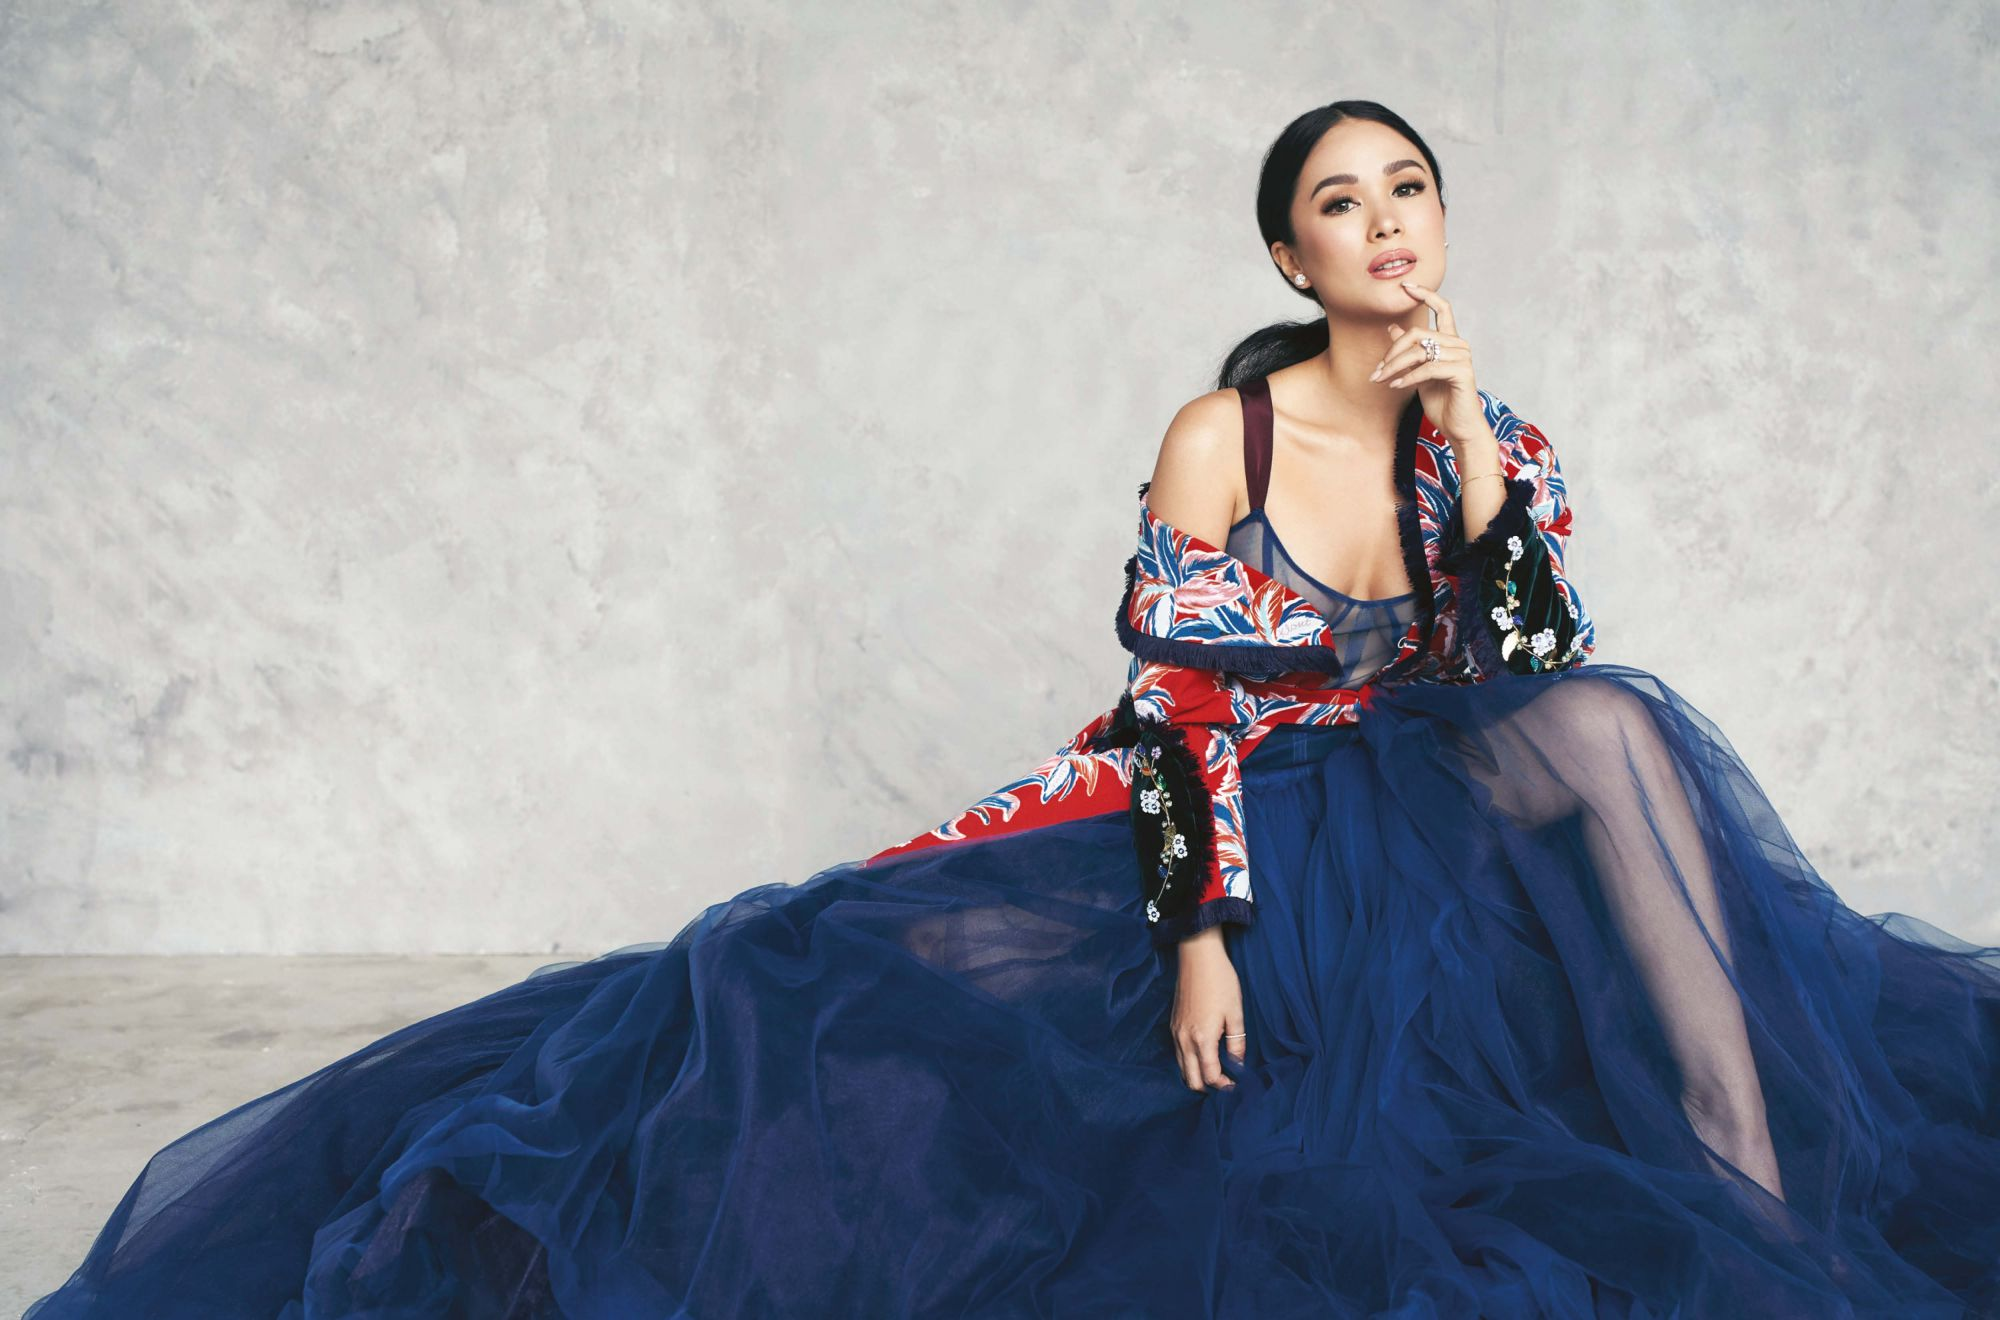 Luxury Fashion Houses' VVIPs Lianne Lam, Heart Evangelista And Wendy Yu Reveal The Perks They Get